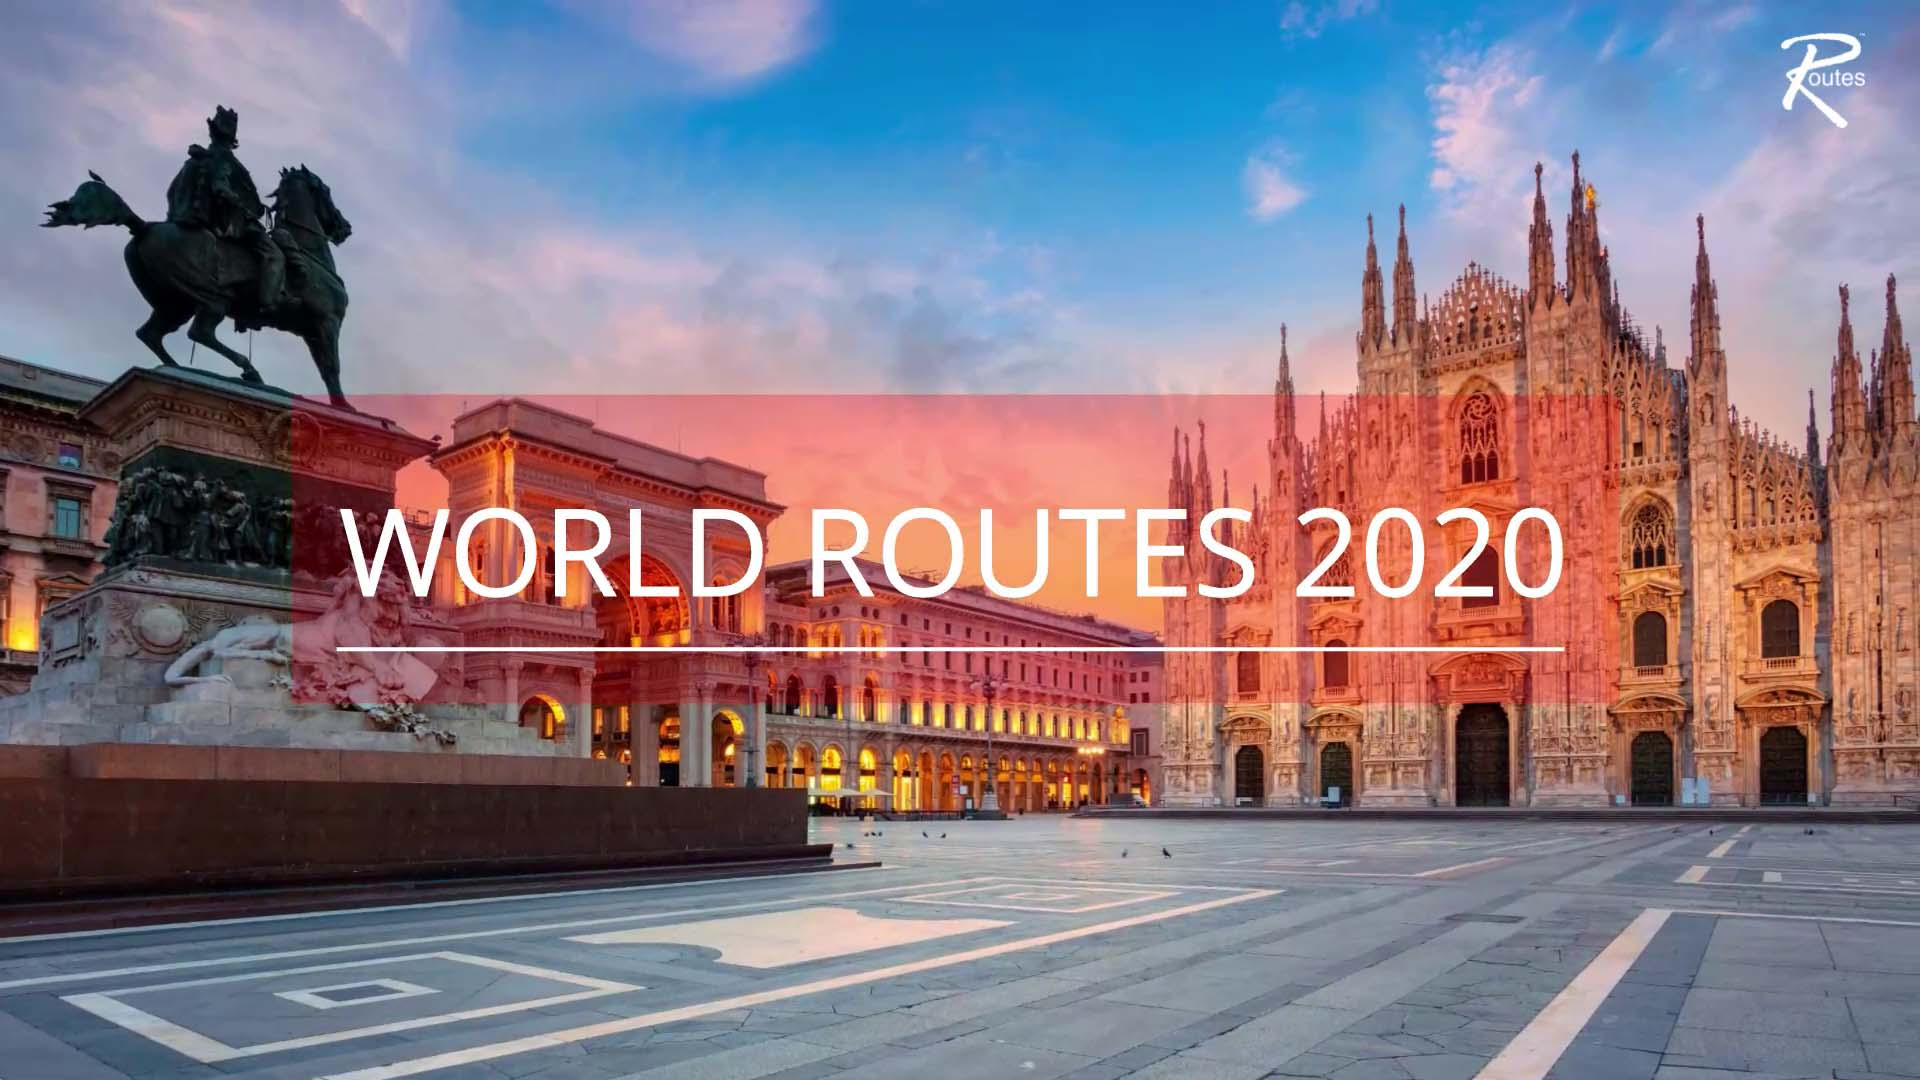 World Routes 2020